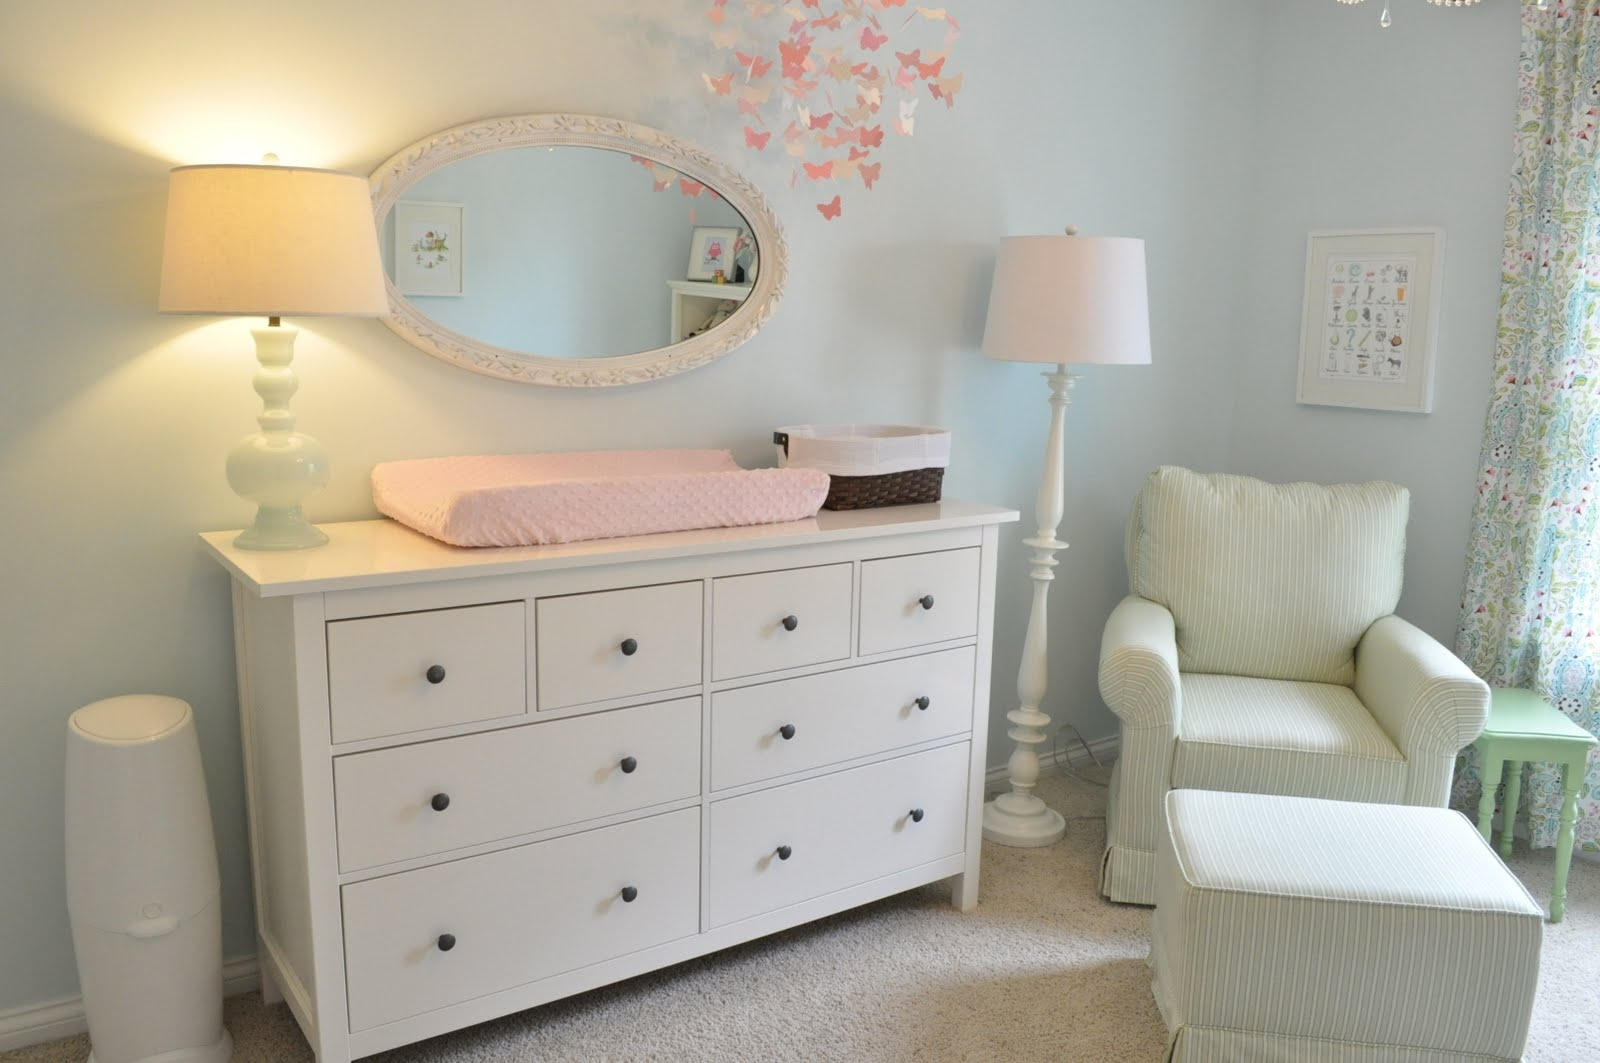 Ikea Baby Kast : Baby changing tables with drawers ideas on foter